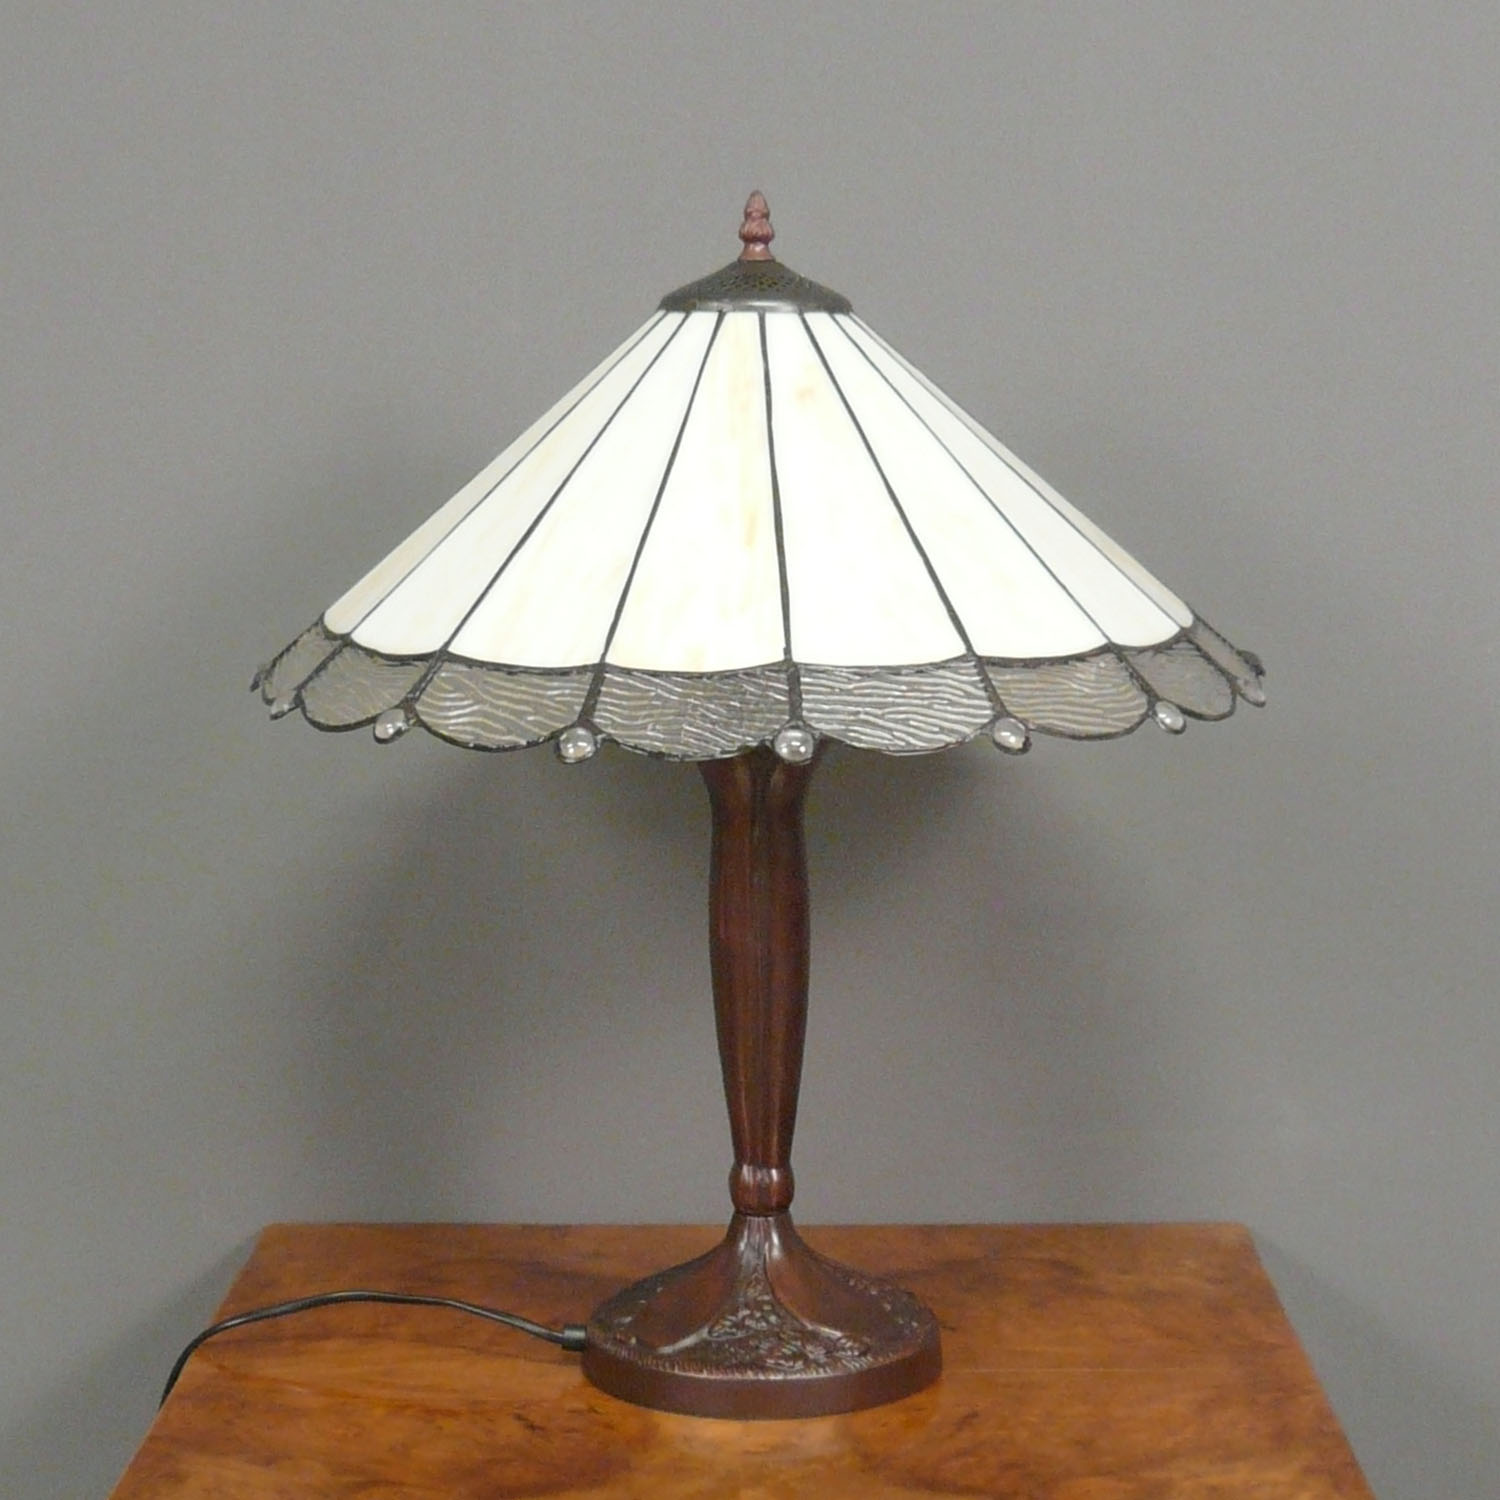 Tiffany lamp art deco lamps floor chandelier for Tiffany lampen